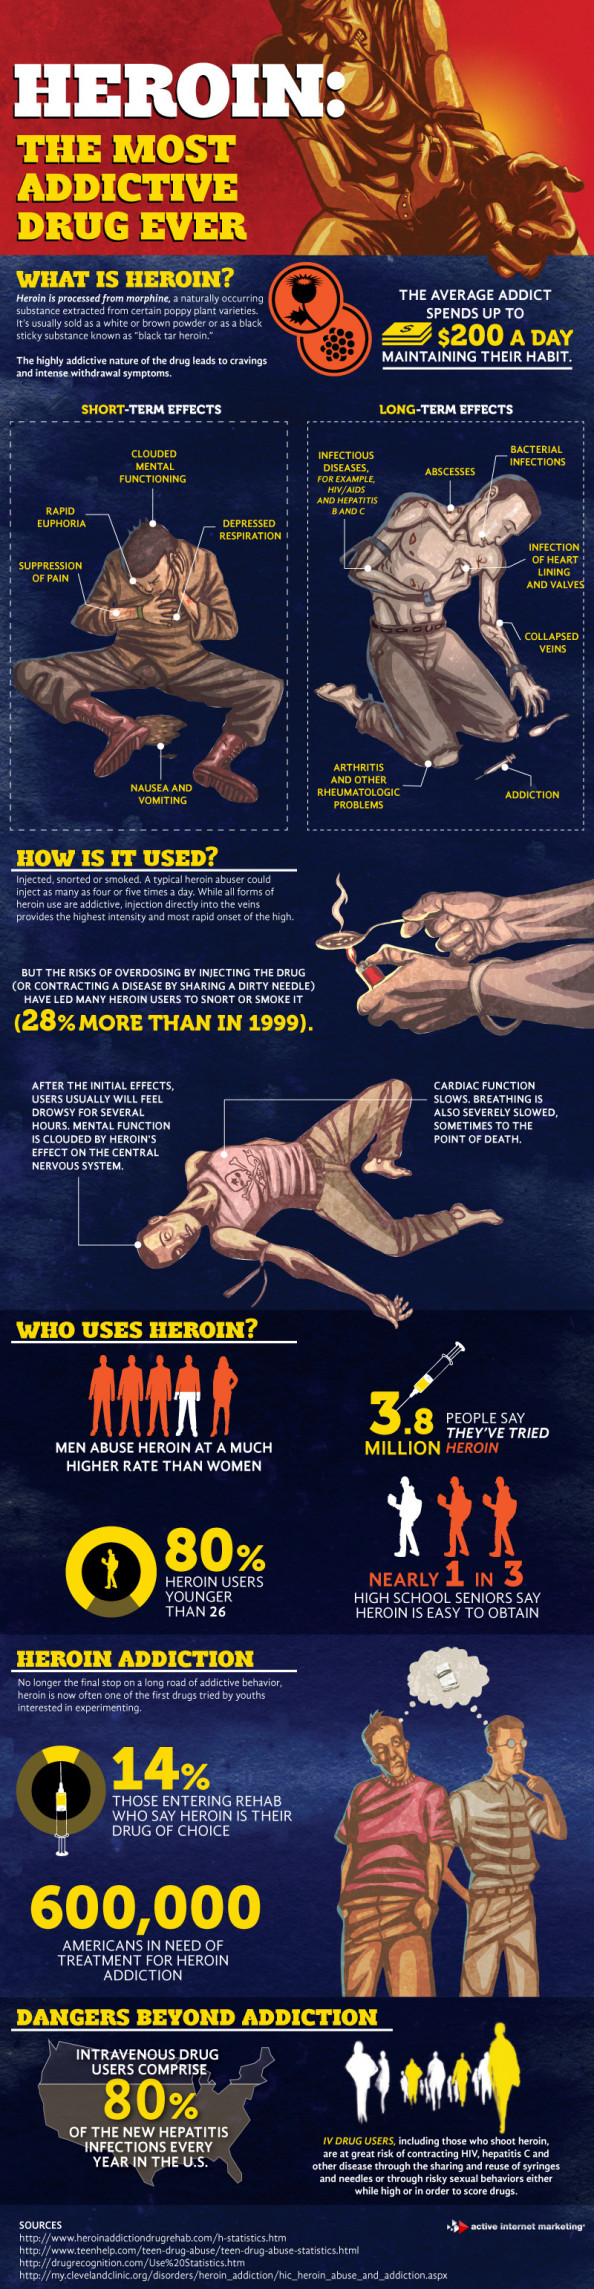 Heroin - The Most Addictive Drug Ever Infographic